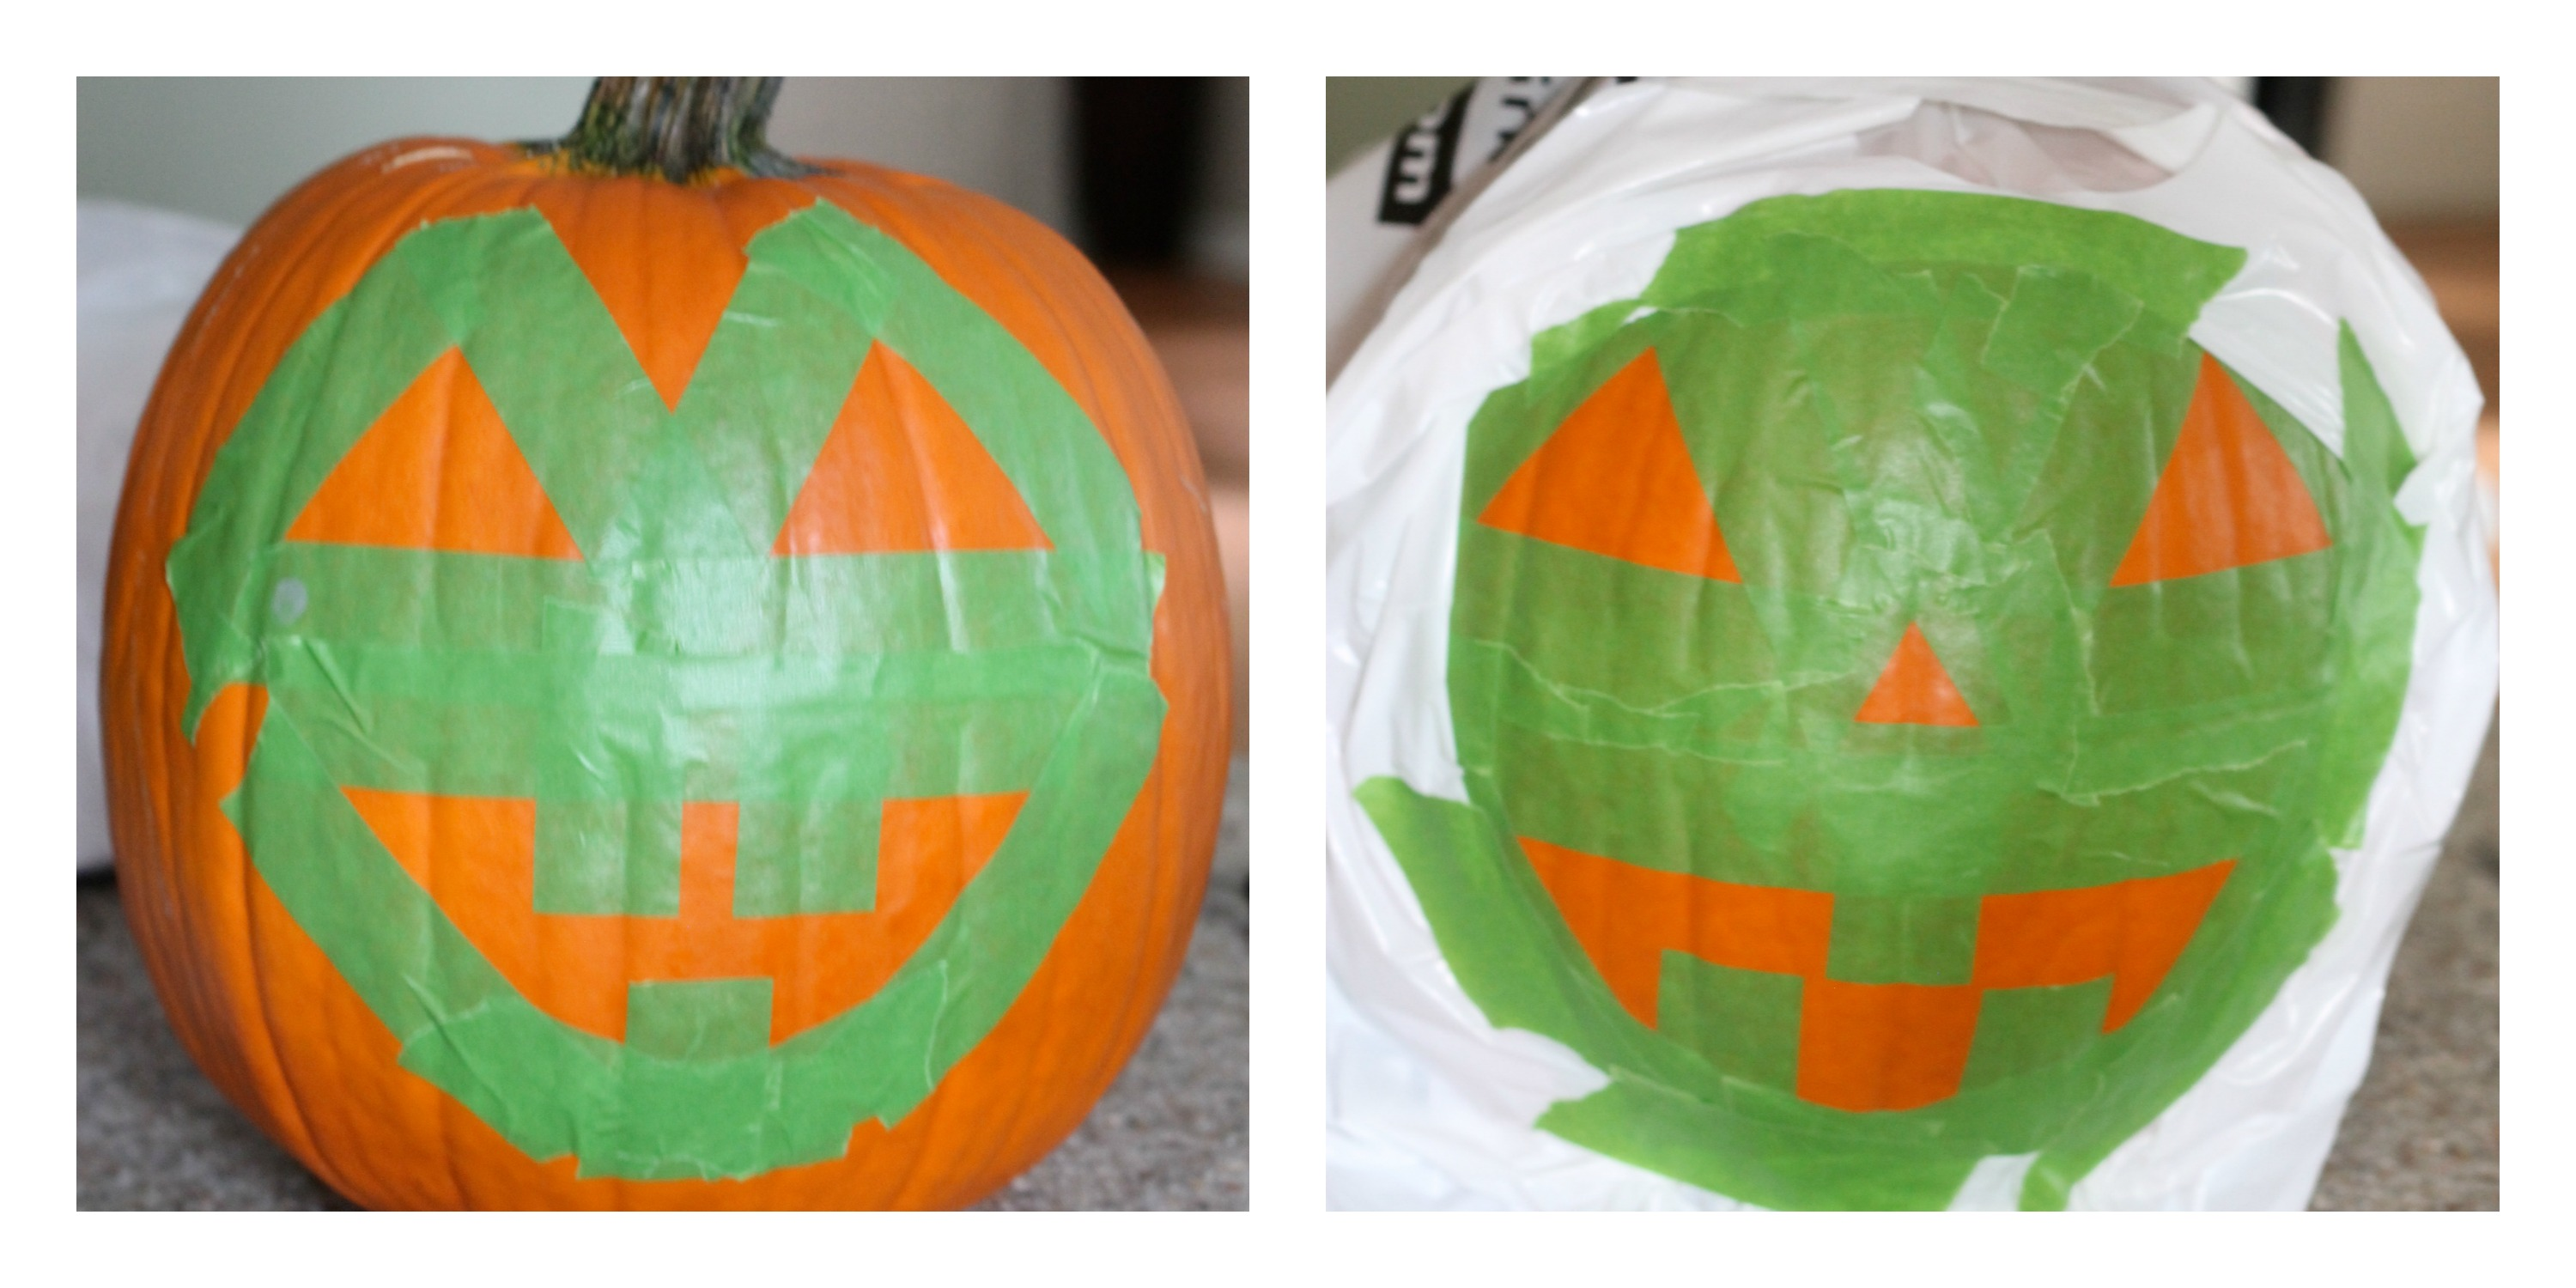 Glow in the Dark Jack-o-Lanterns by PartiesforPennies.com | Halloween, Thanksgiving, Fall, Pumpkins, Jack O Lanterns